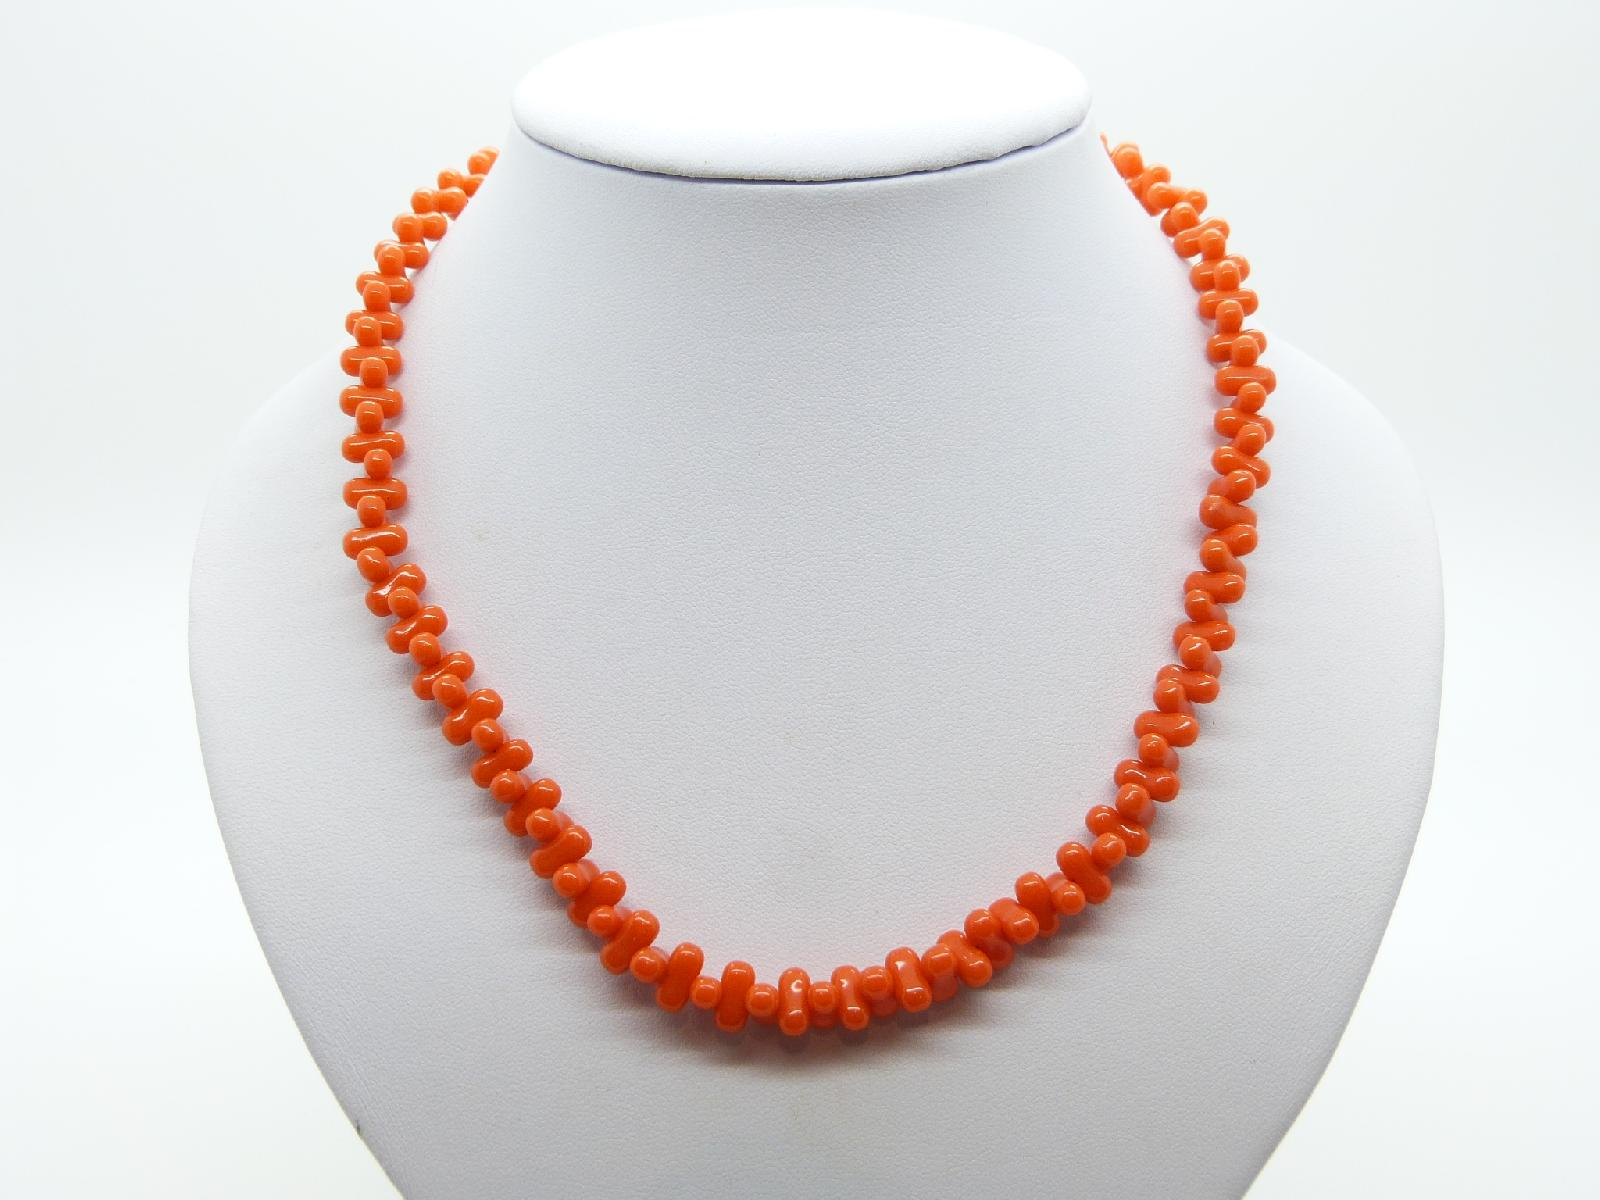 £12.00 - Vintage 60s Unusual and Unique Bright Orange Glass Bead Necklace